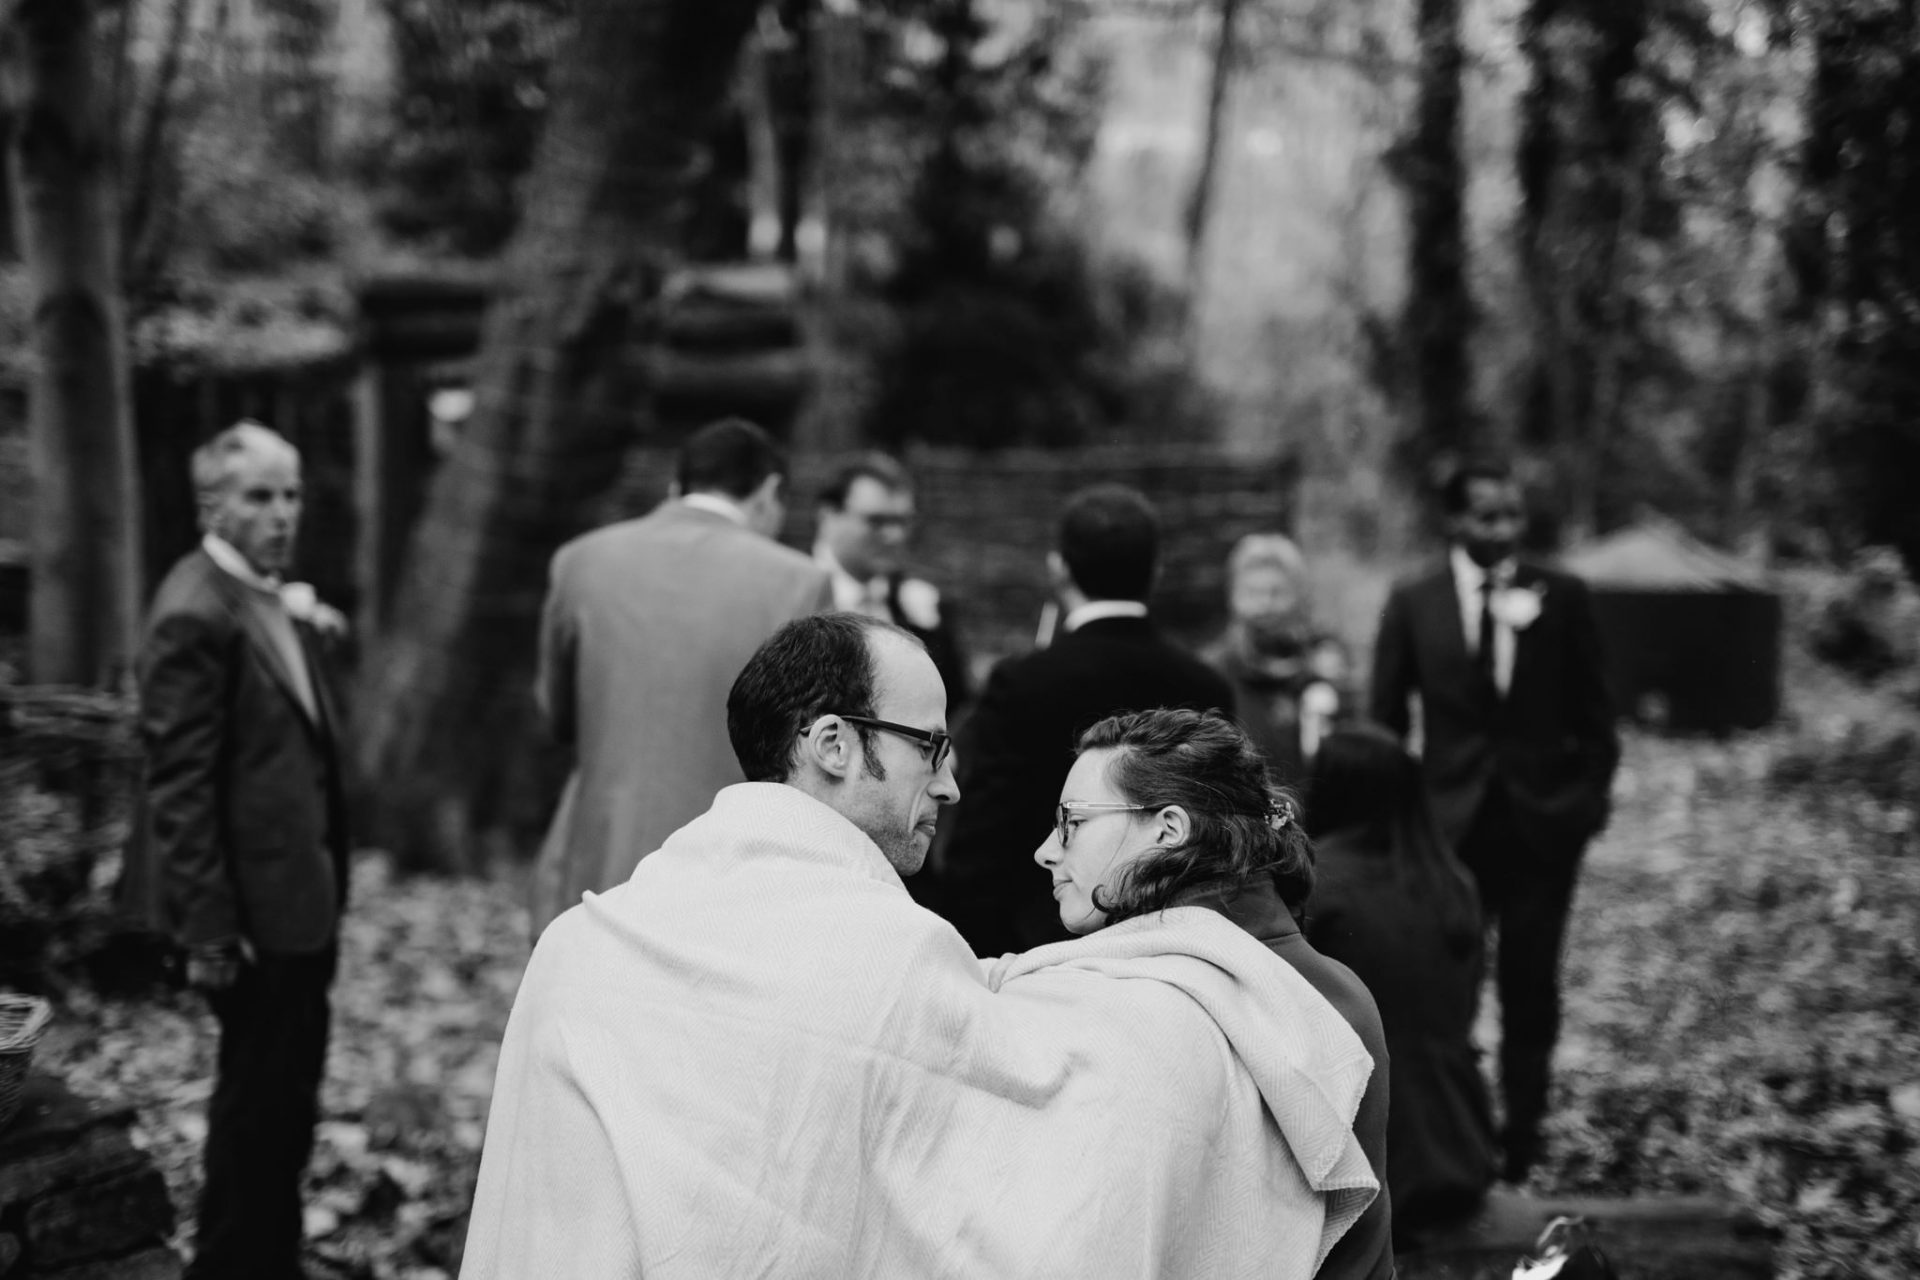 wedding guests share scarf keeping warm